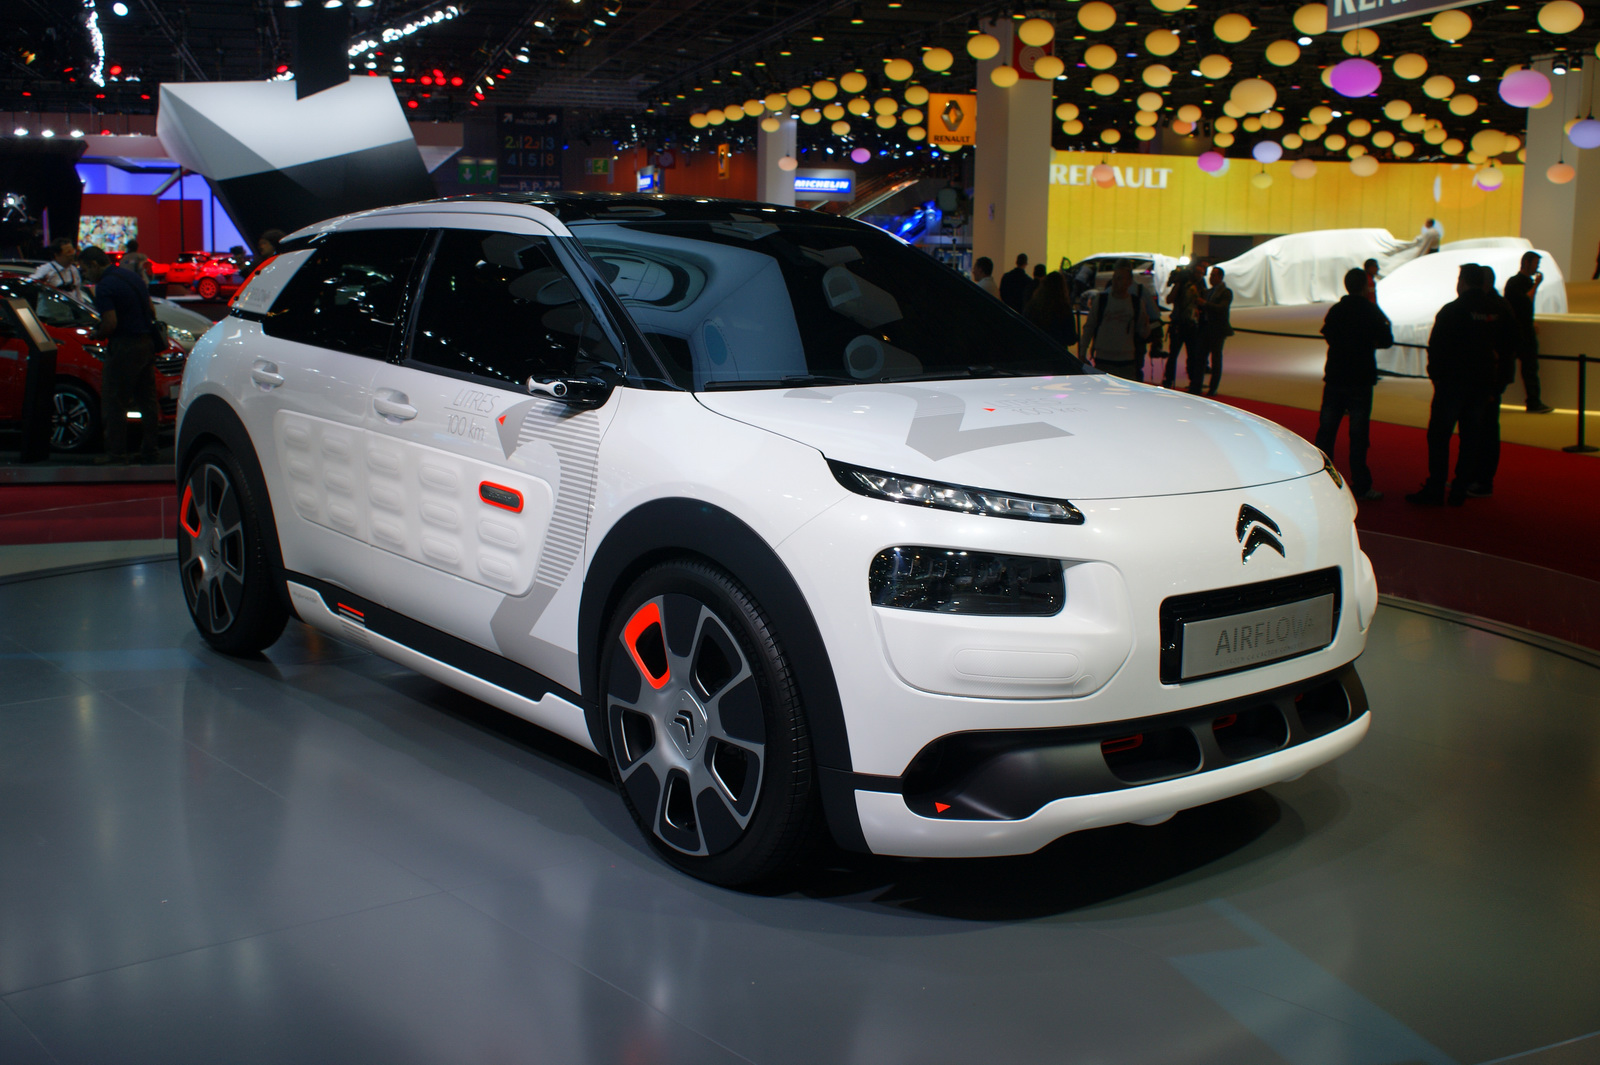 citro n 39 s c4 cactus airflow 2l concept proves fuel efficiency can look good carscoops. Black Bedroom Furniture Sets. Home Design Ideas